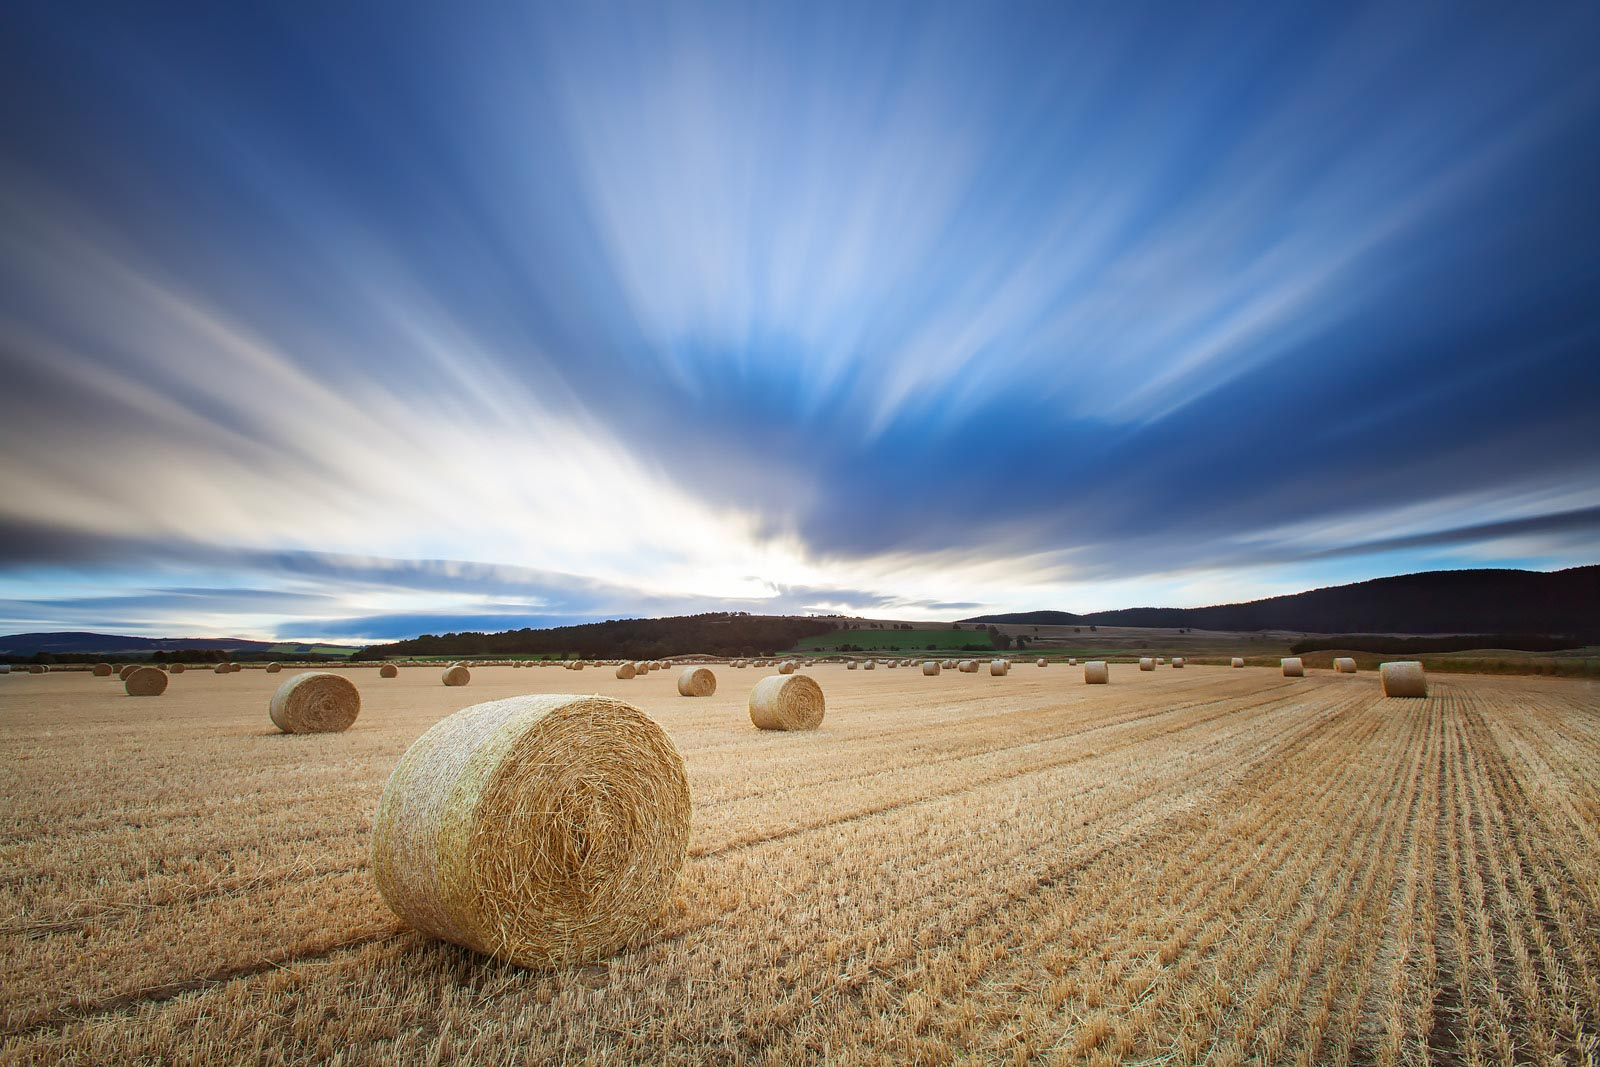 Long exposure photography field of hay